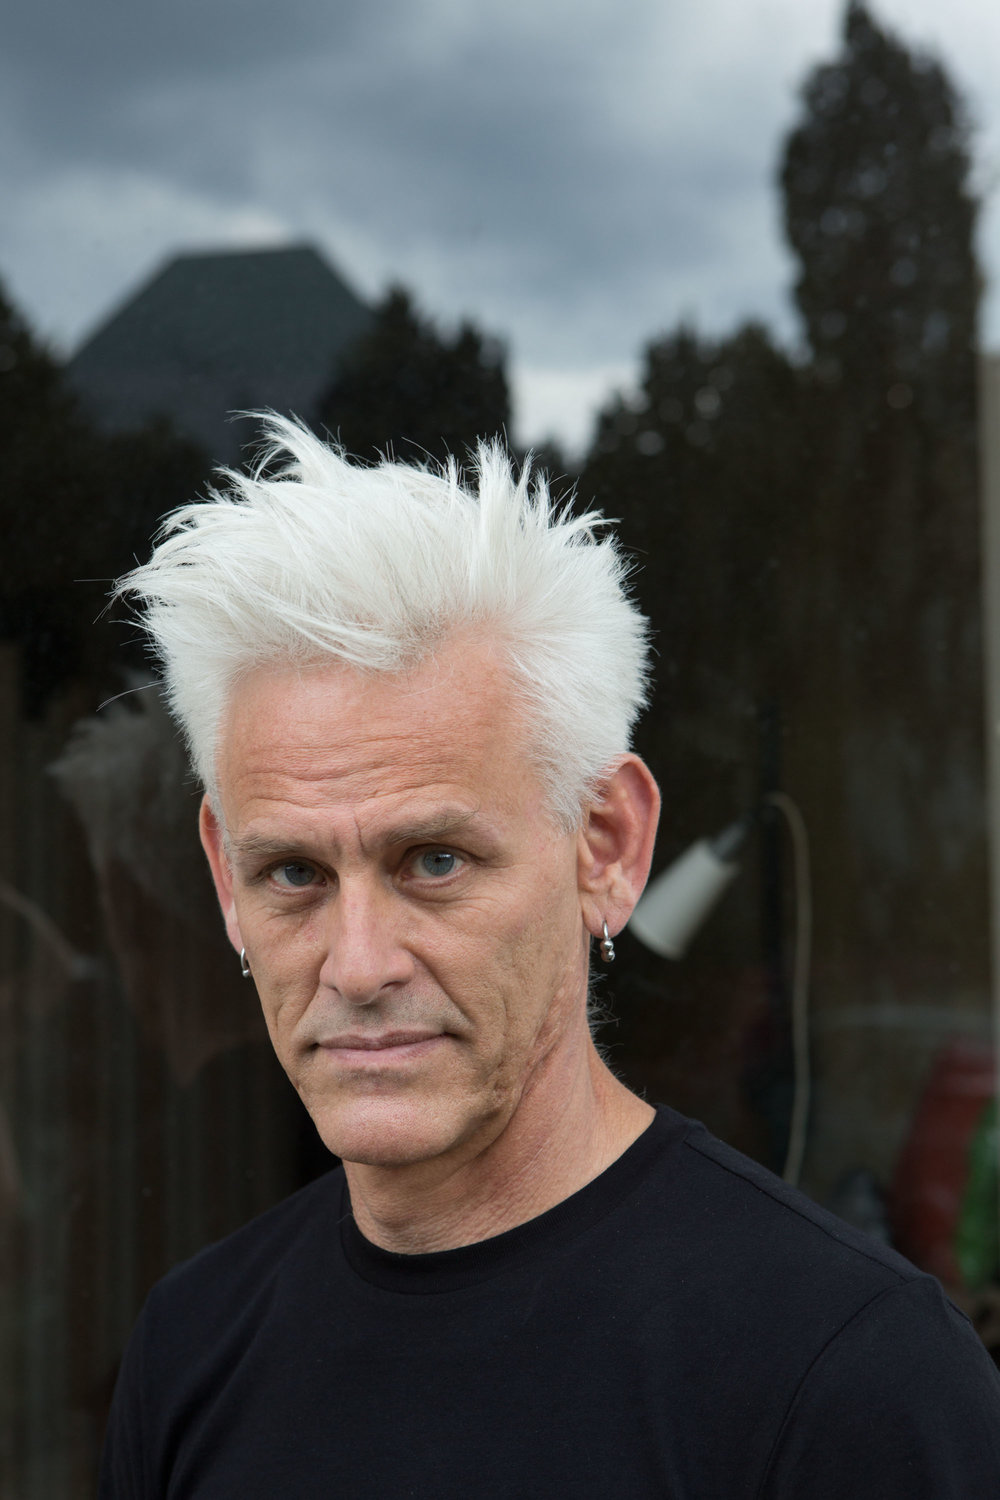 Jess Curtis wears a black tee shirt and silver earrings. He has a shock of white hair and looks into the camera. (photo: Sven Hagolani)